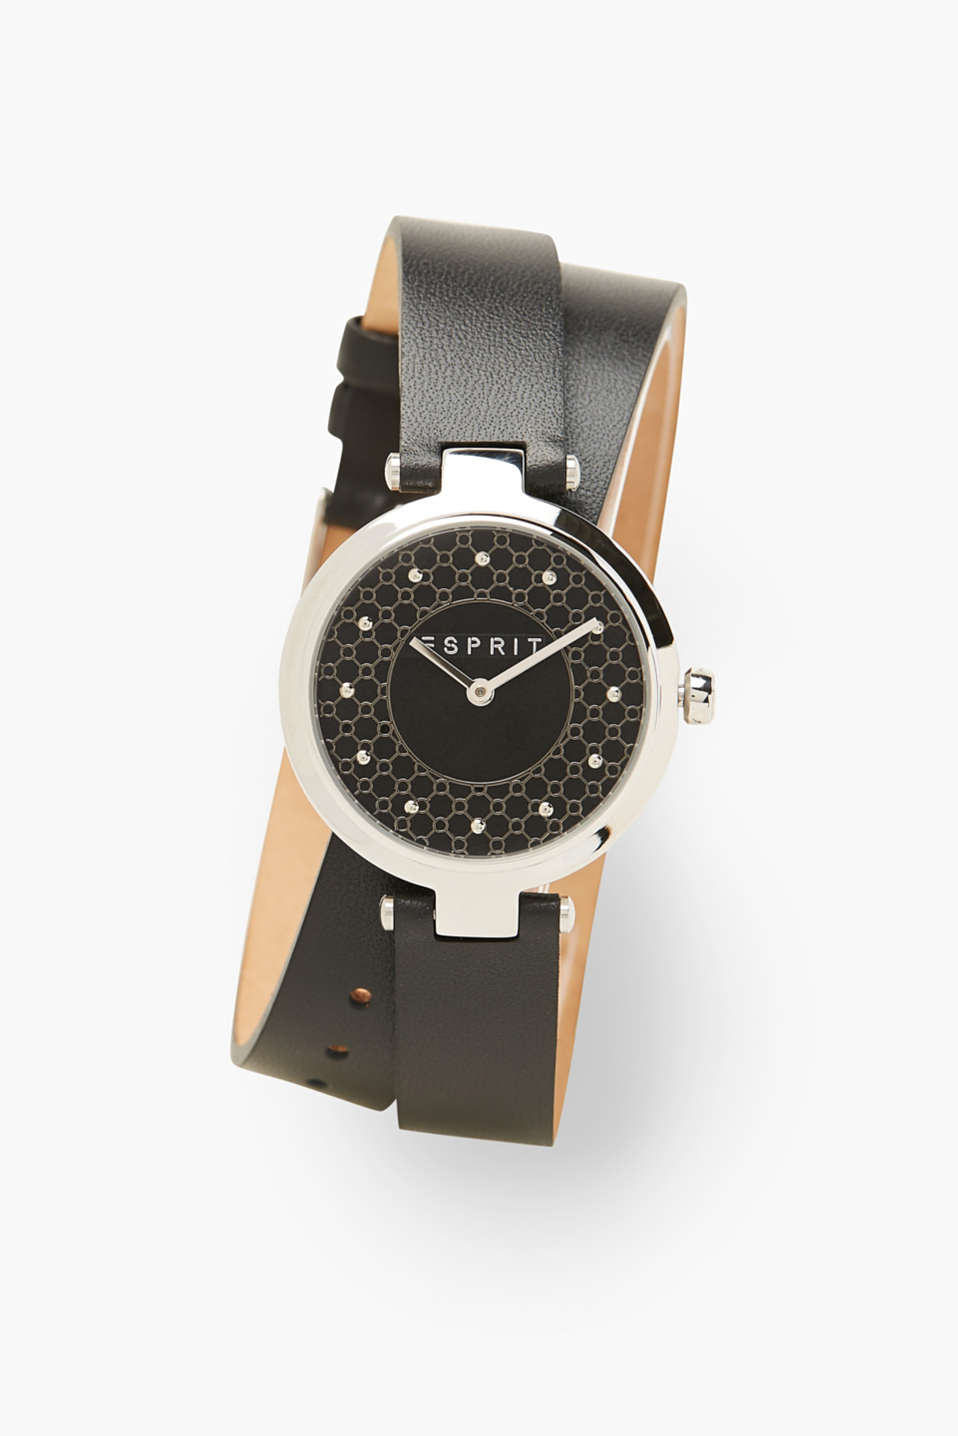 Esprit - Watch with double-bound leather wrist strap